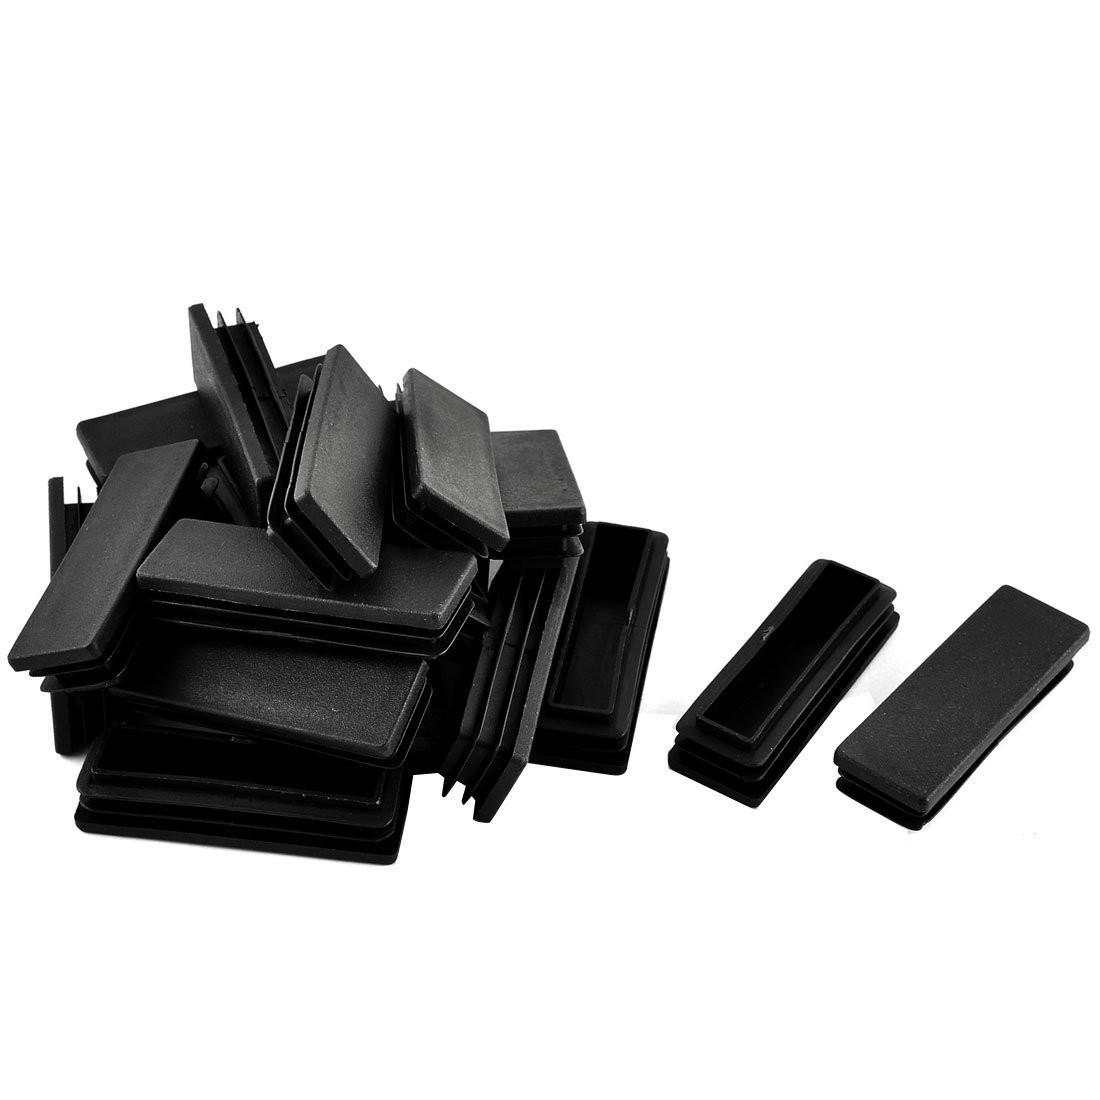 uxcell Plastic Rectangular Shaped Home School Table Chair Leg Feet Tube Pipe Insert 20 Pcs Black  sc 1 st  Alibaba & Buy uxcell Plastic Rectangular Shaped Home School Table Chair Leg ...